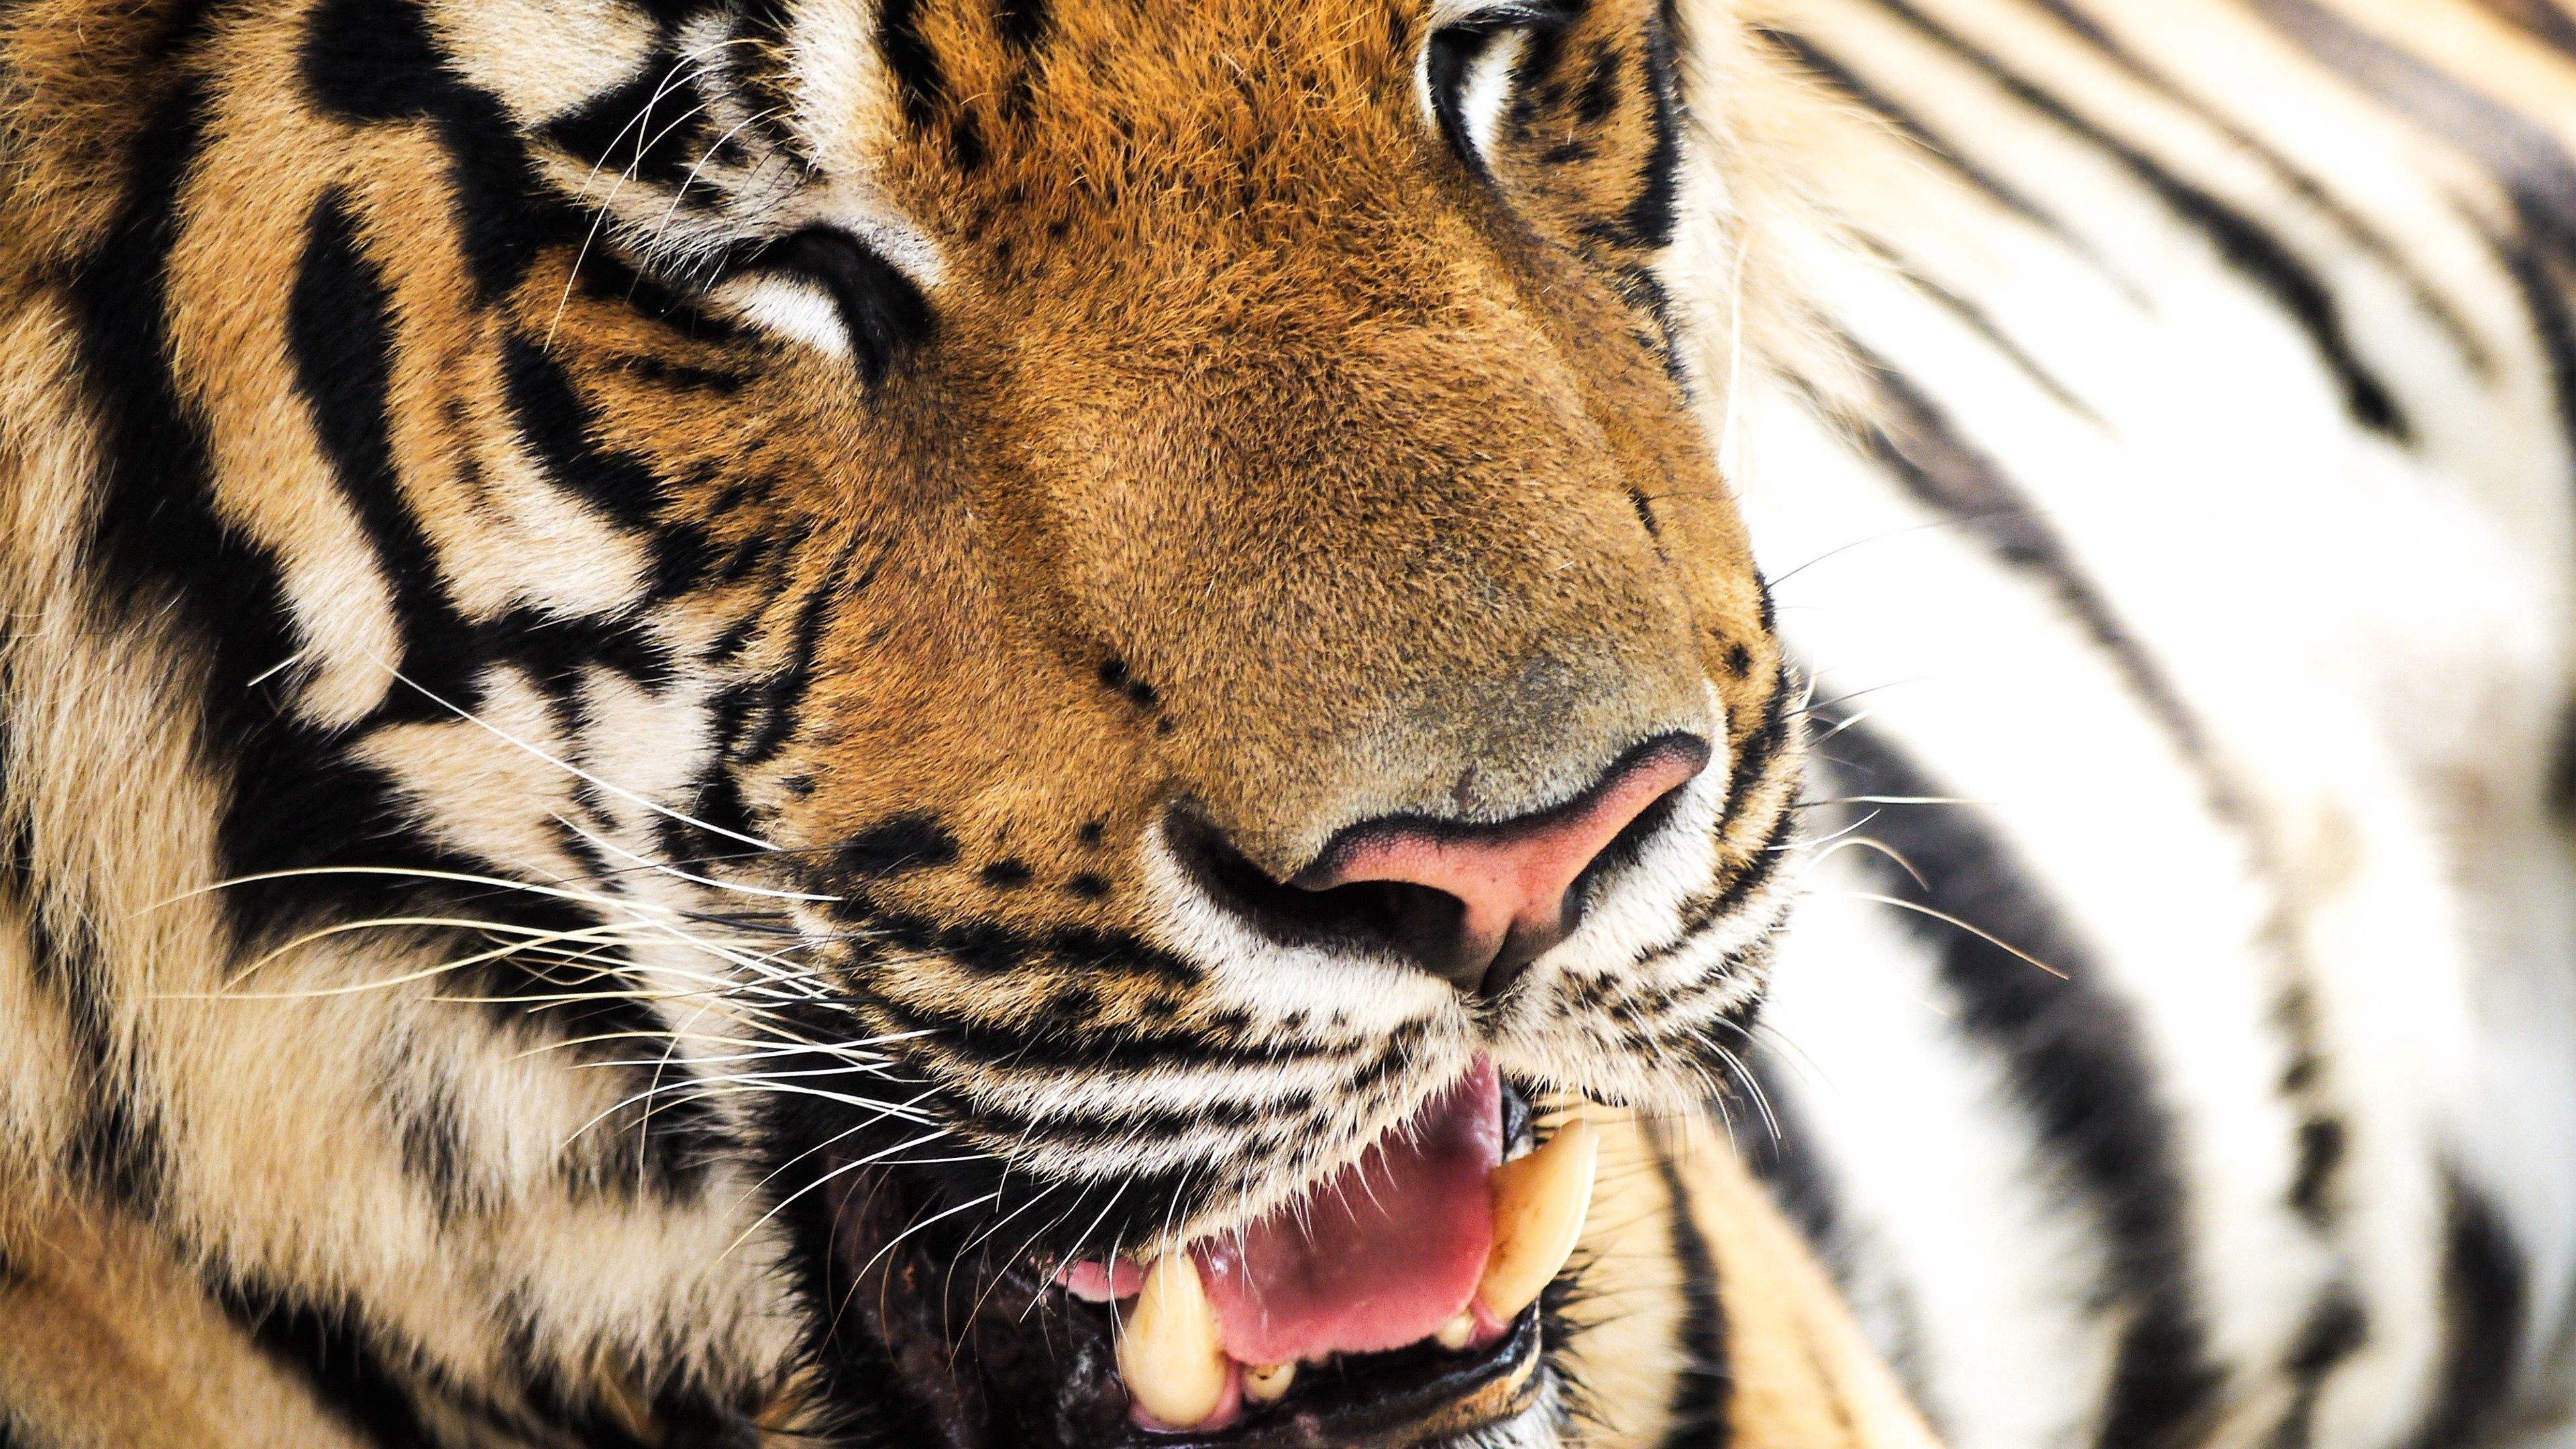 148220 Screensavers and Wallpapers Nose for phone. Download Animals, Muzzle, Tiger, Nose, Teeth pictures for free